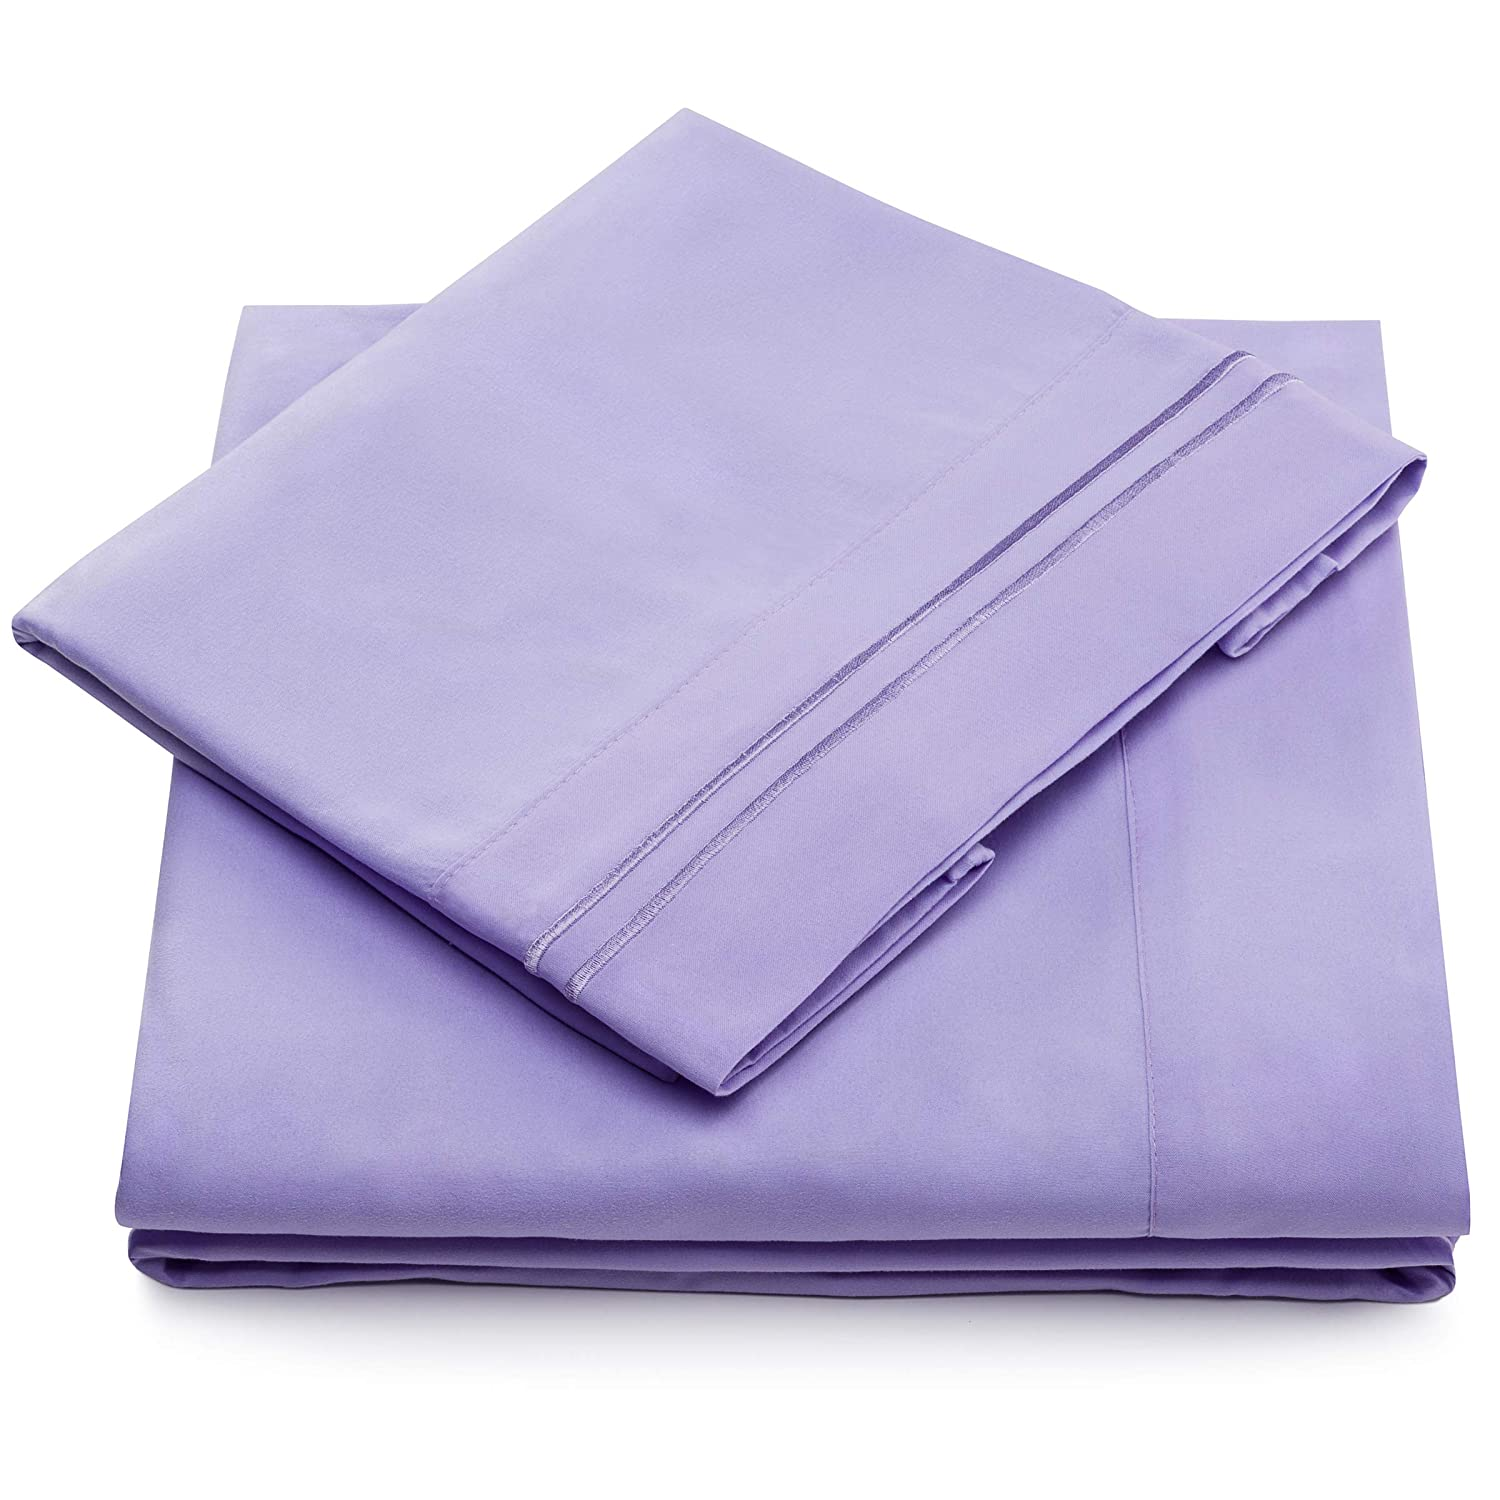 Twin XL Size Bed Sheets - Lavender Twin Extra Long Bedding Set - Deep Pocket - Ultra Soft Luxury Hotel Sheets- Hypoallergenic - Cool & Breathable - Wrinkle, Stain, Fade Resistant - 3 Piece